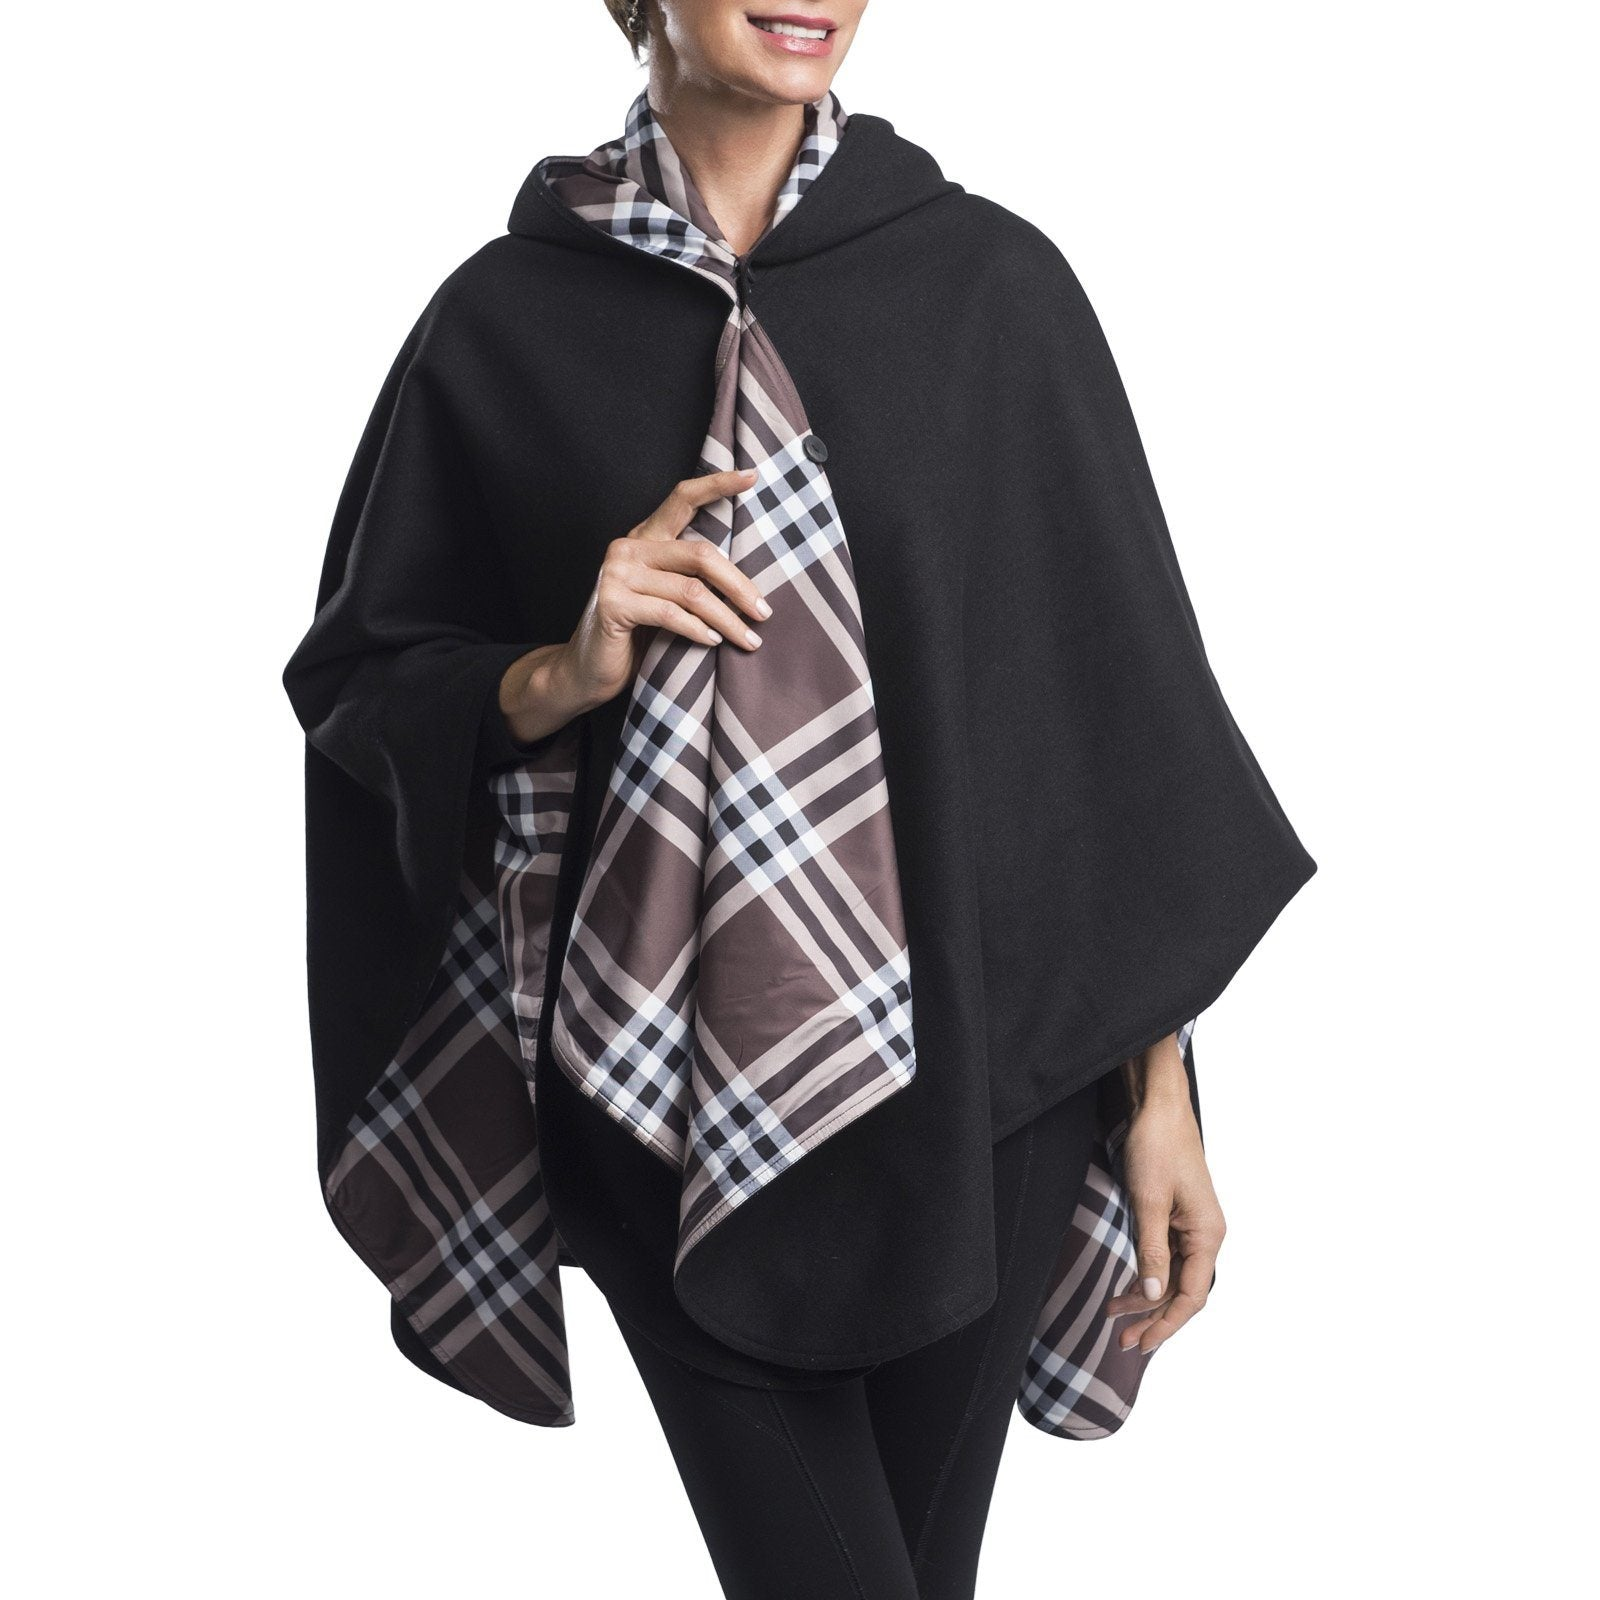 Woman wearing a WarmCaper Rainproof Black & Coco Plaid rain and travel cape. The reversible cape is warm black; the Rainproof Coco Plaid print is visible on the hood and lapels